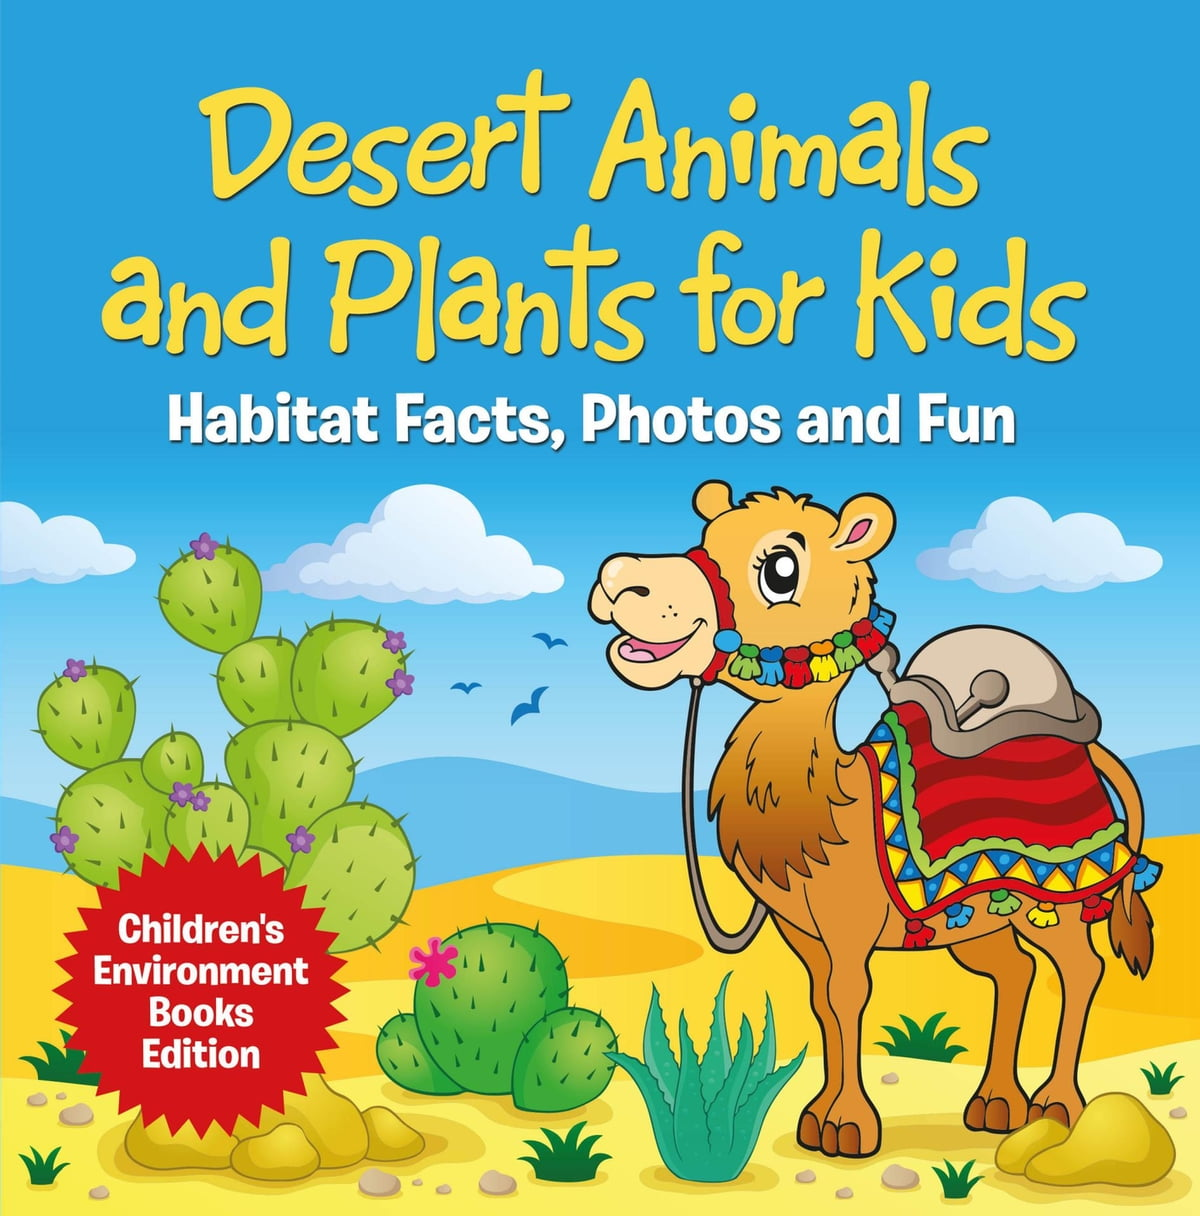 Desert Animals And Plants For Kids: Habitat Facts, Photos